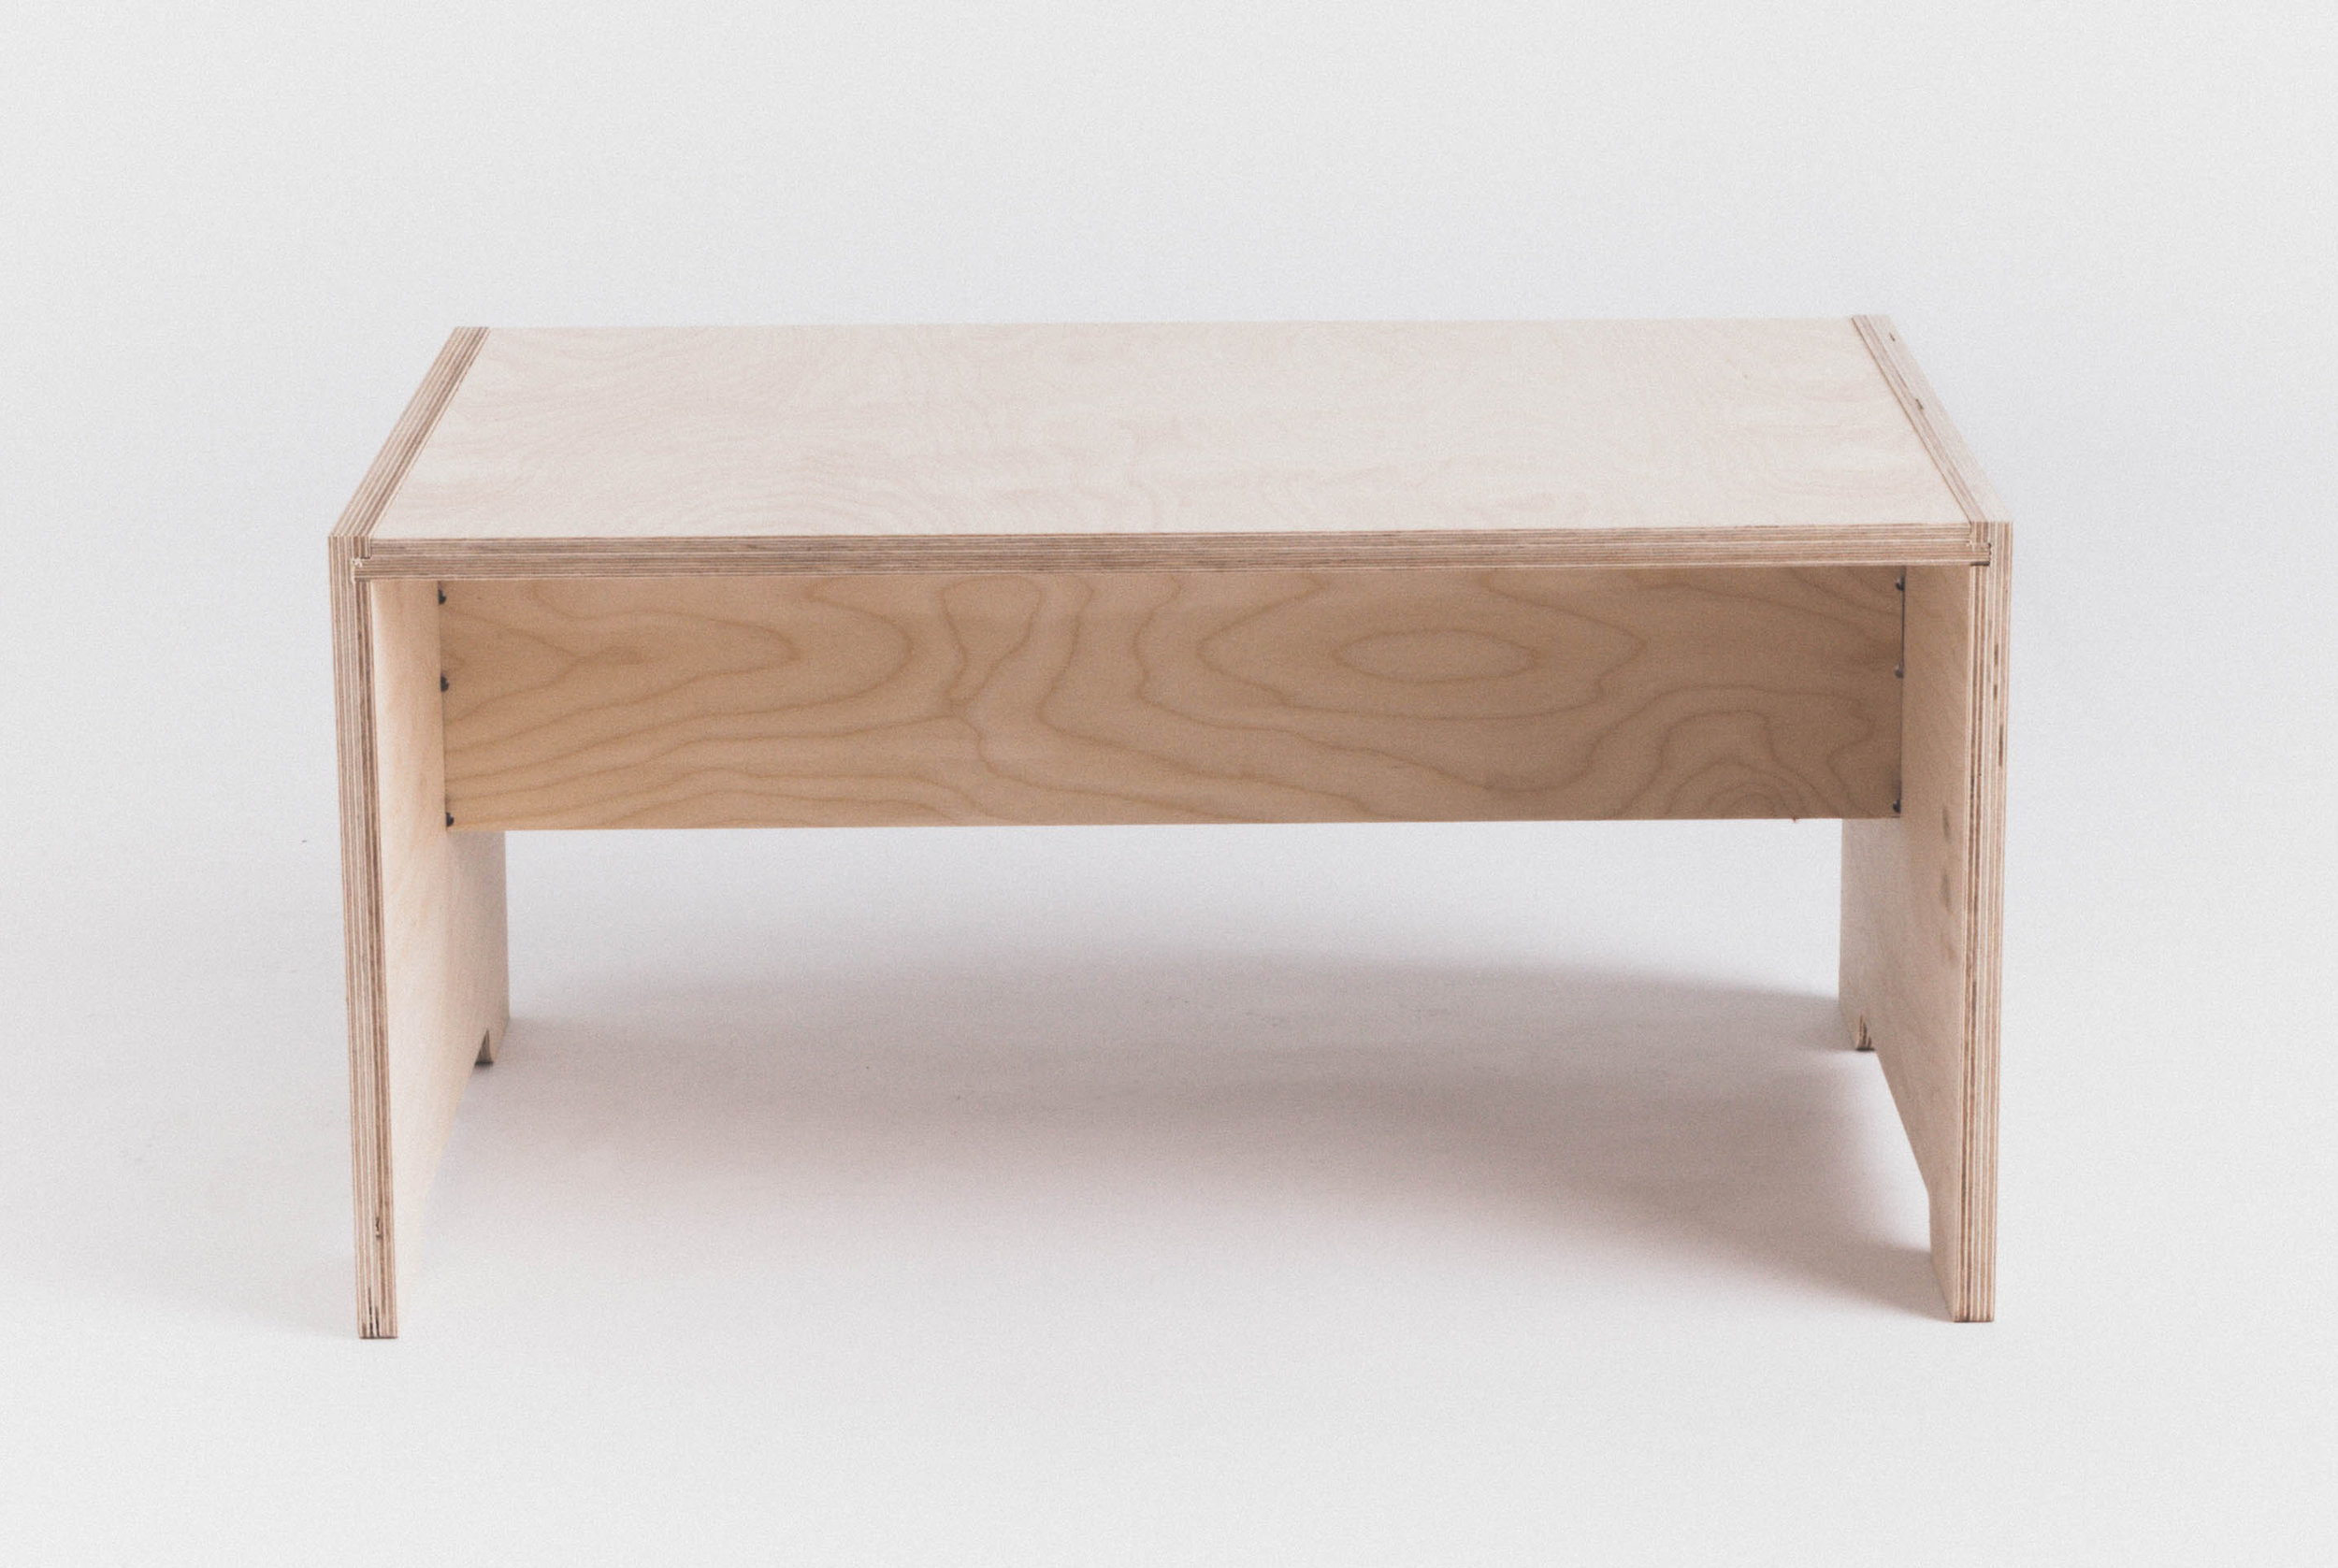 coffeeTable_front.jpg